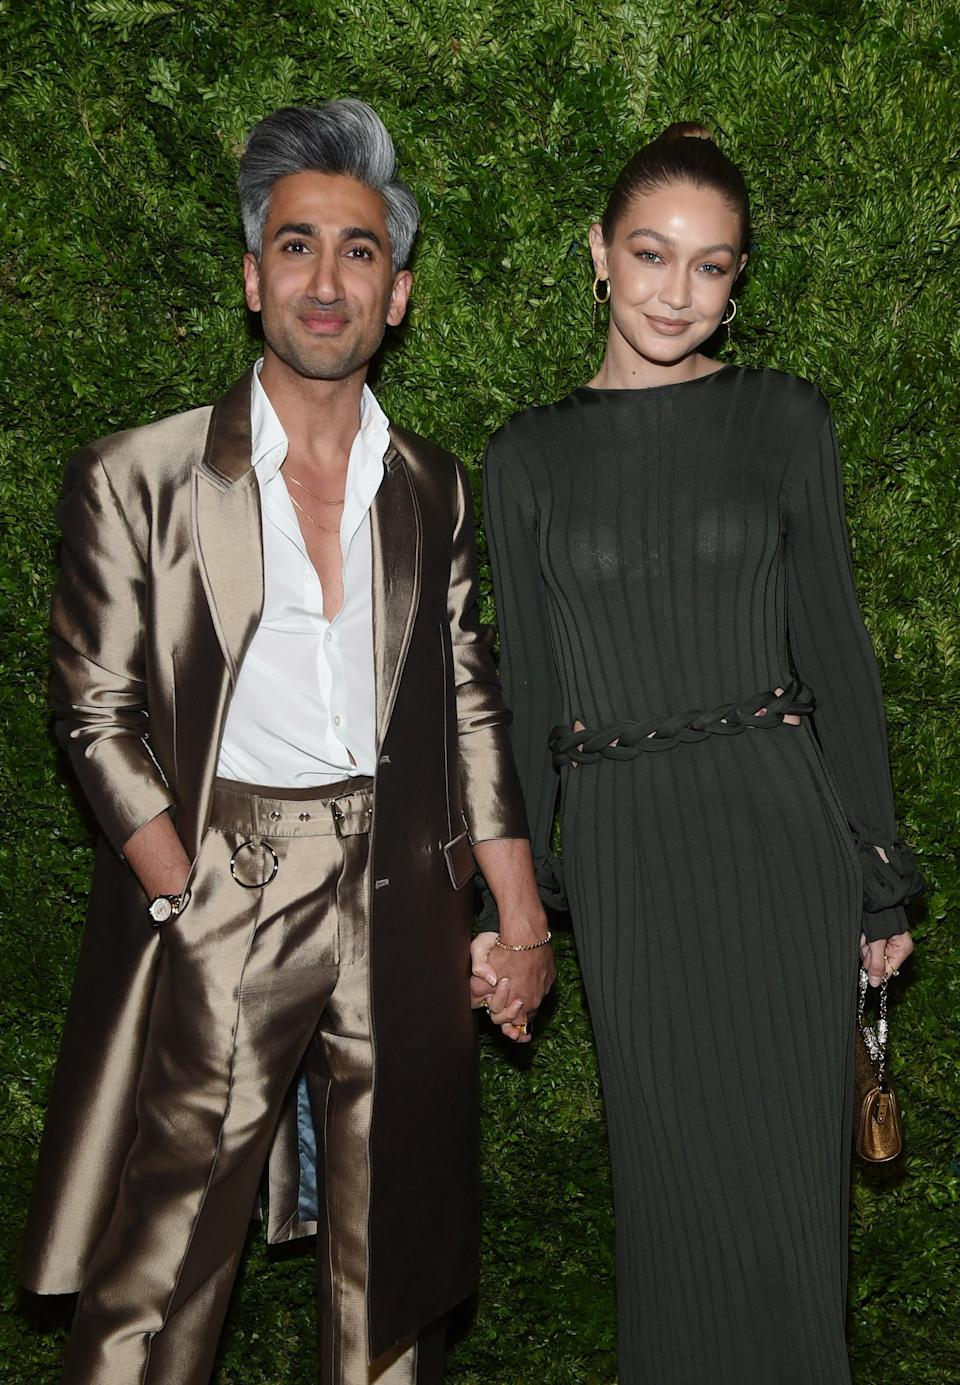 NEW YORK, NEW YORK - NOVEMBER 04: Tan France and Gigi Hadid attend the CFDA / Vogue Fashion Fund 2019 Awards at Cipriani South Street on November 04, 2019 in New York City. (Photo by Jamie McCarthy/Getty Images)